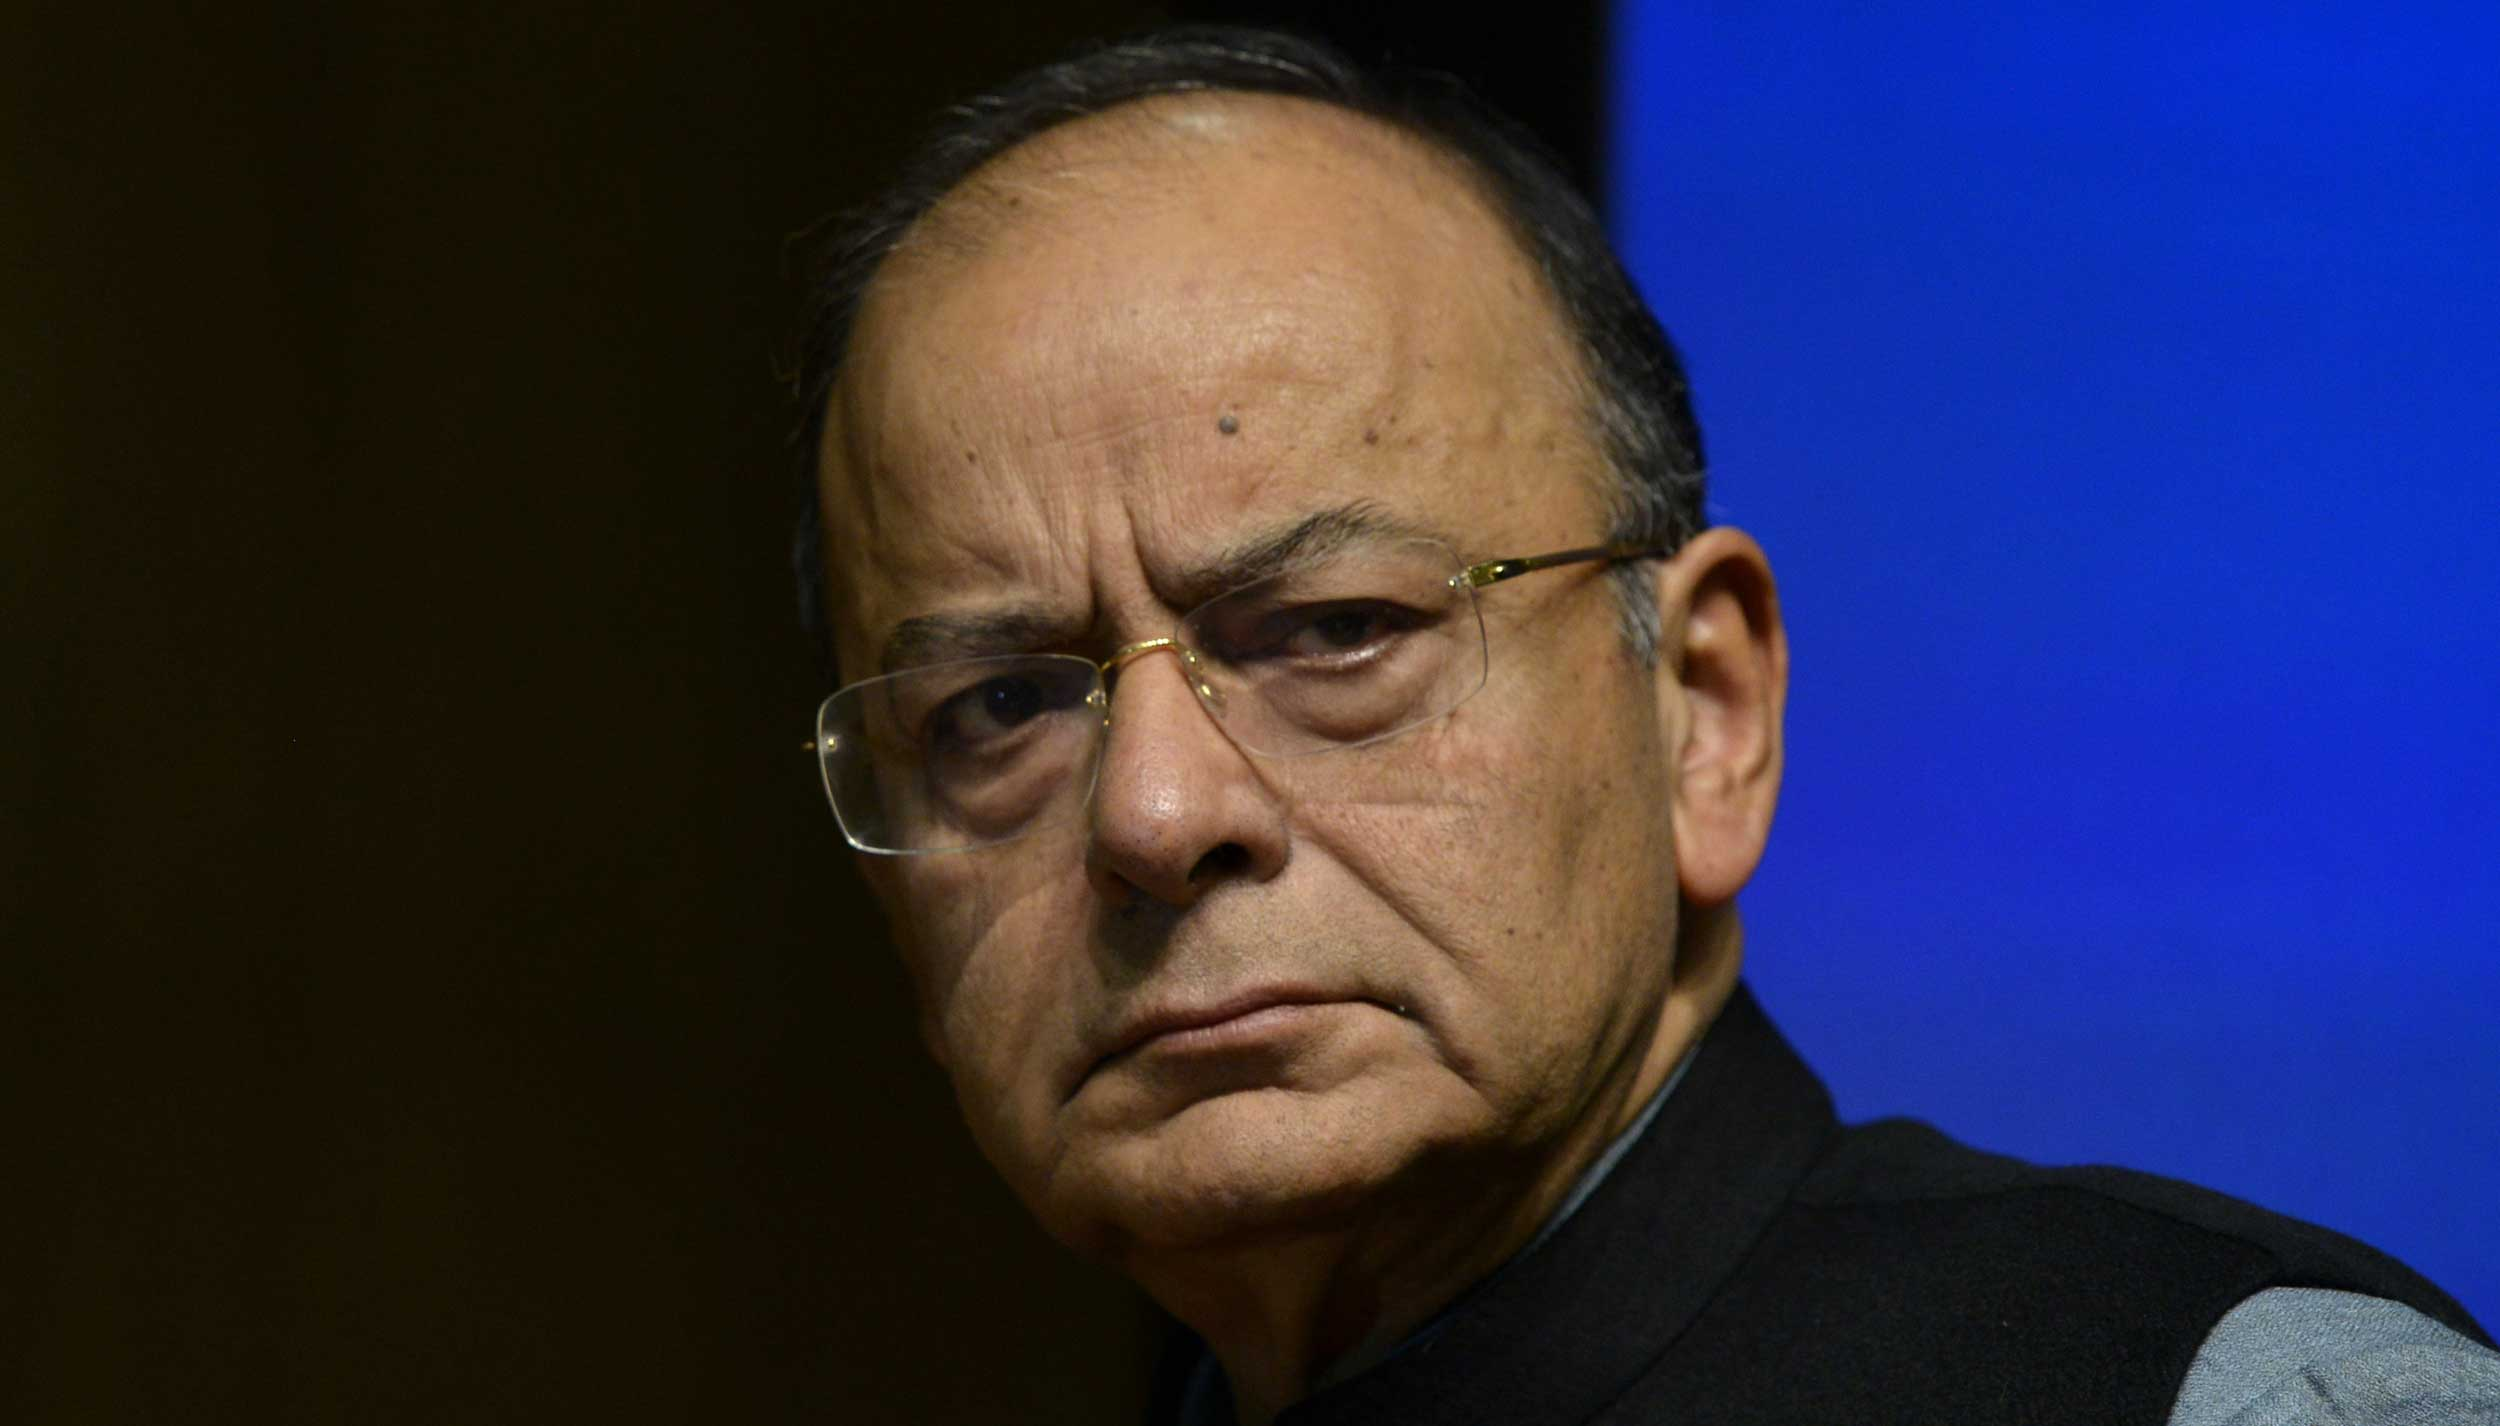 Arun Jaitley's decision to be sympathetic to the 'who's who of the banking industry' shows that the Narendra Modi government is not speaking in one voice on an issue of public concern.